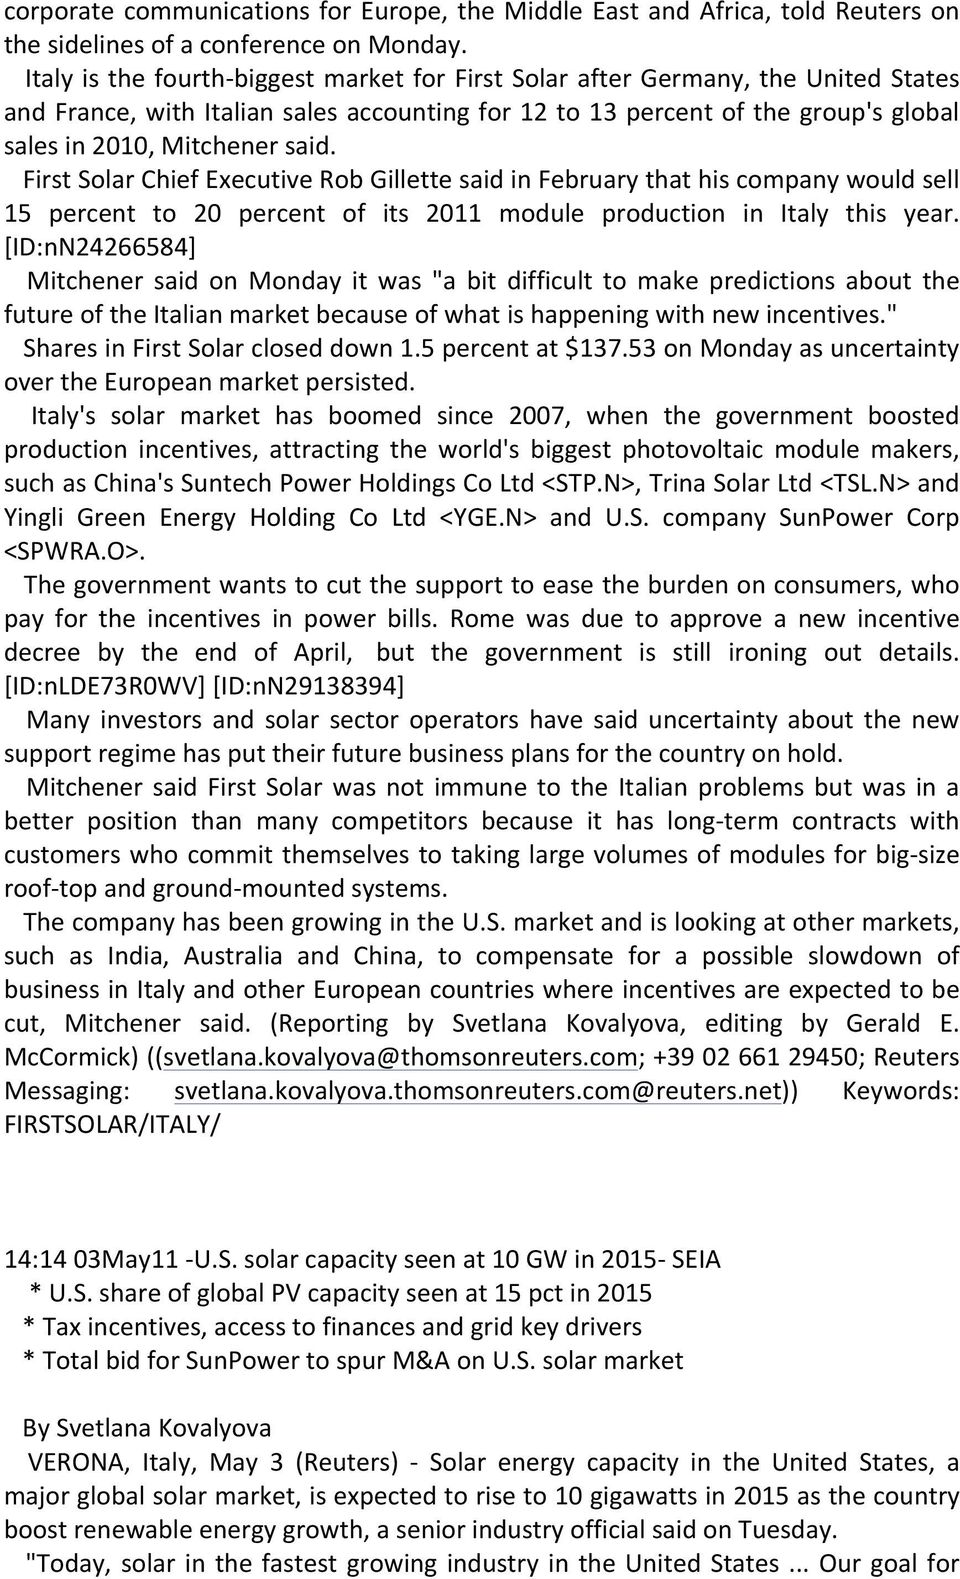 First Solar Chief Executive Rob Gillette said in February that his company would sell 15 percent to 20 percent of its 2011 module production in Italy this year.